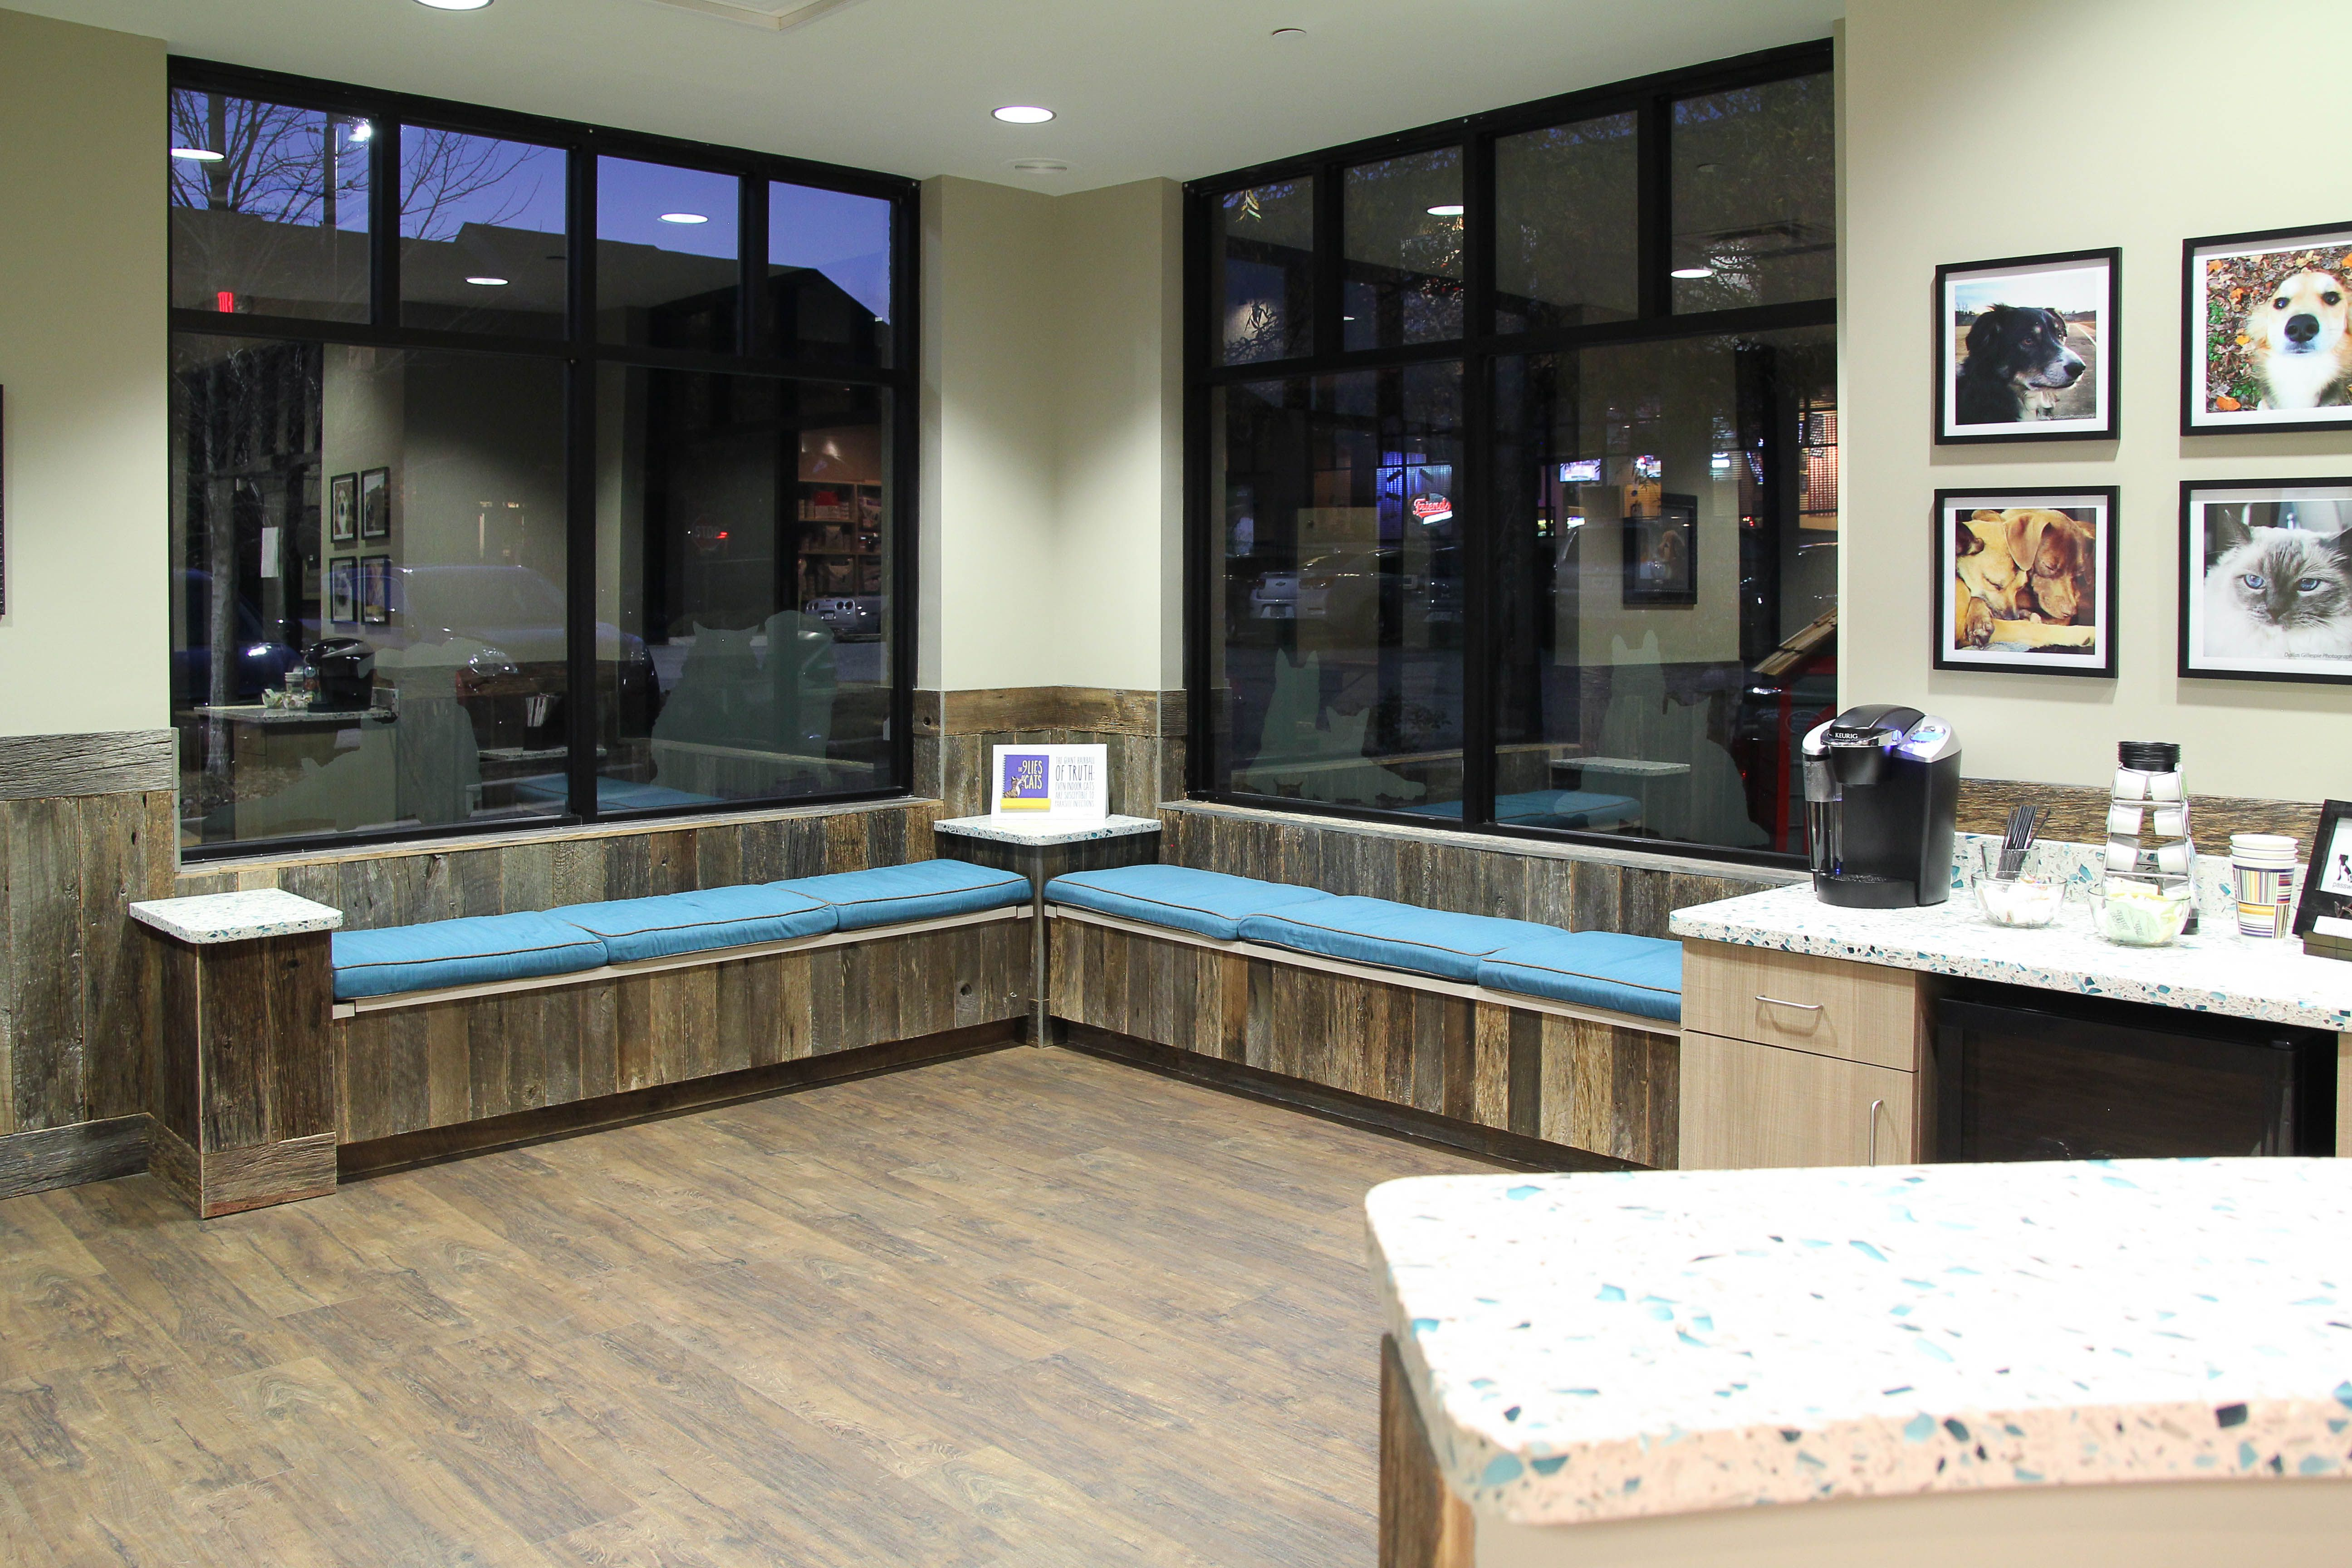 Veterinary Waiting Area With Reclaimed Wood Benches By Bluefrog Design Build Firm Pet Clinic Vet Office Decor Hospital Design